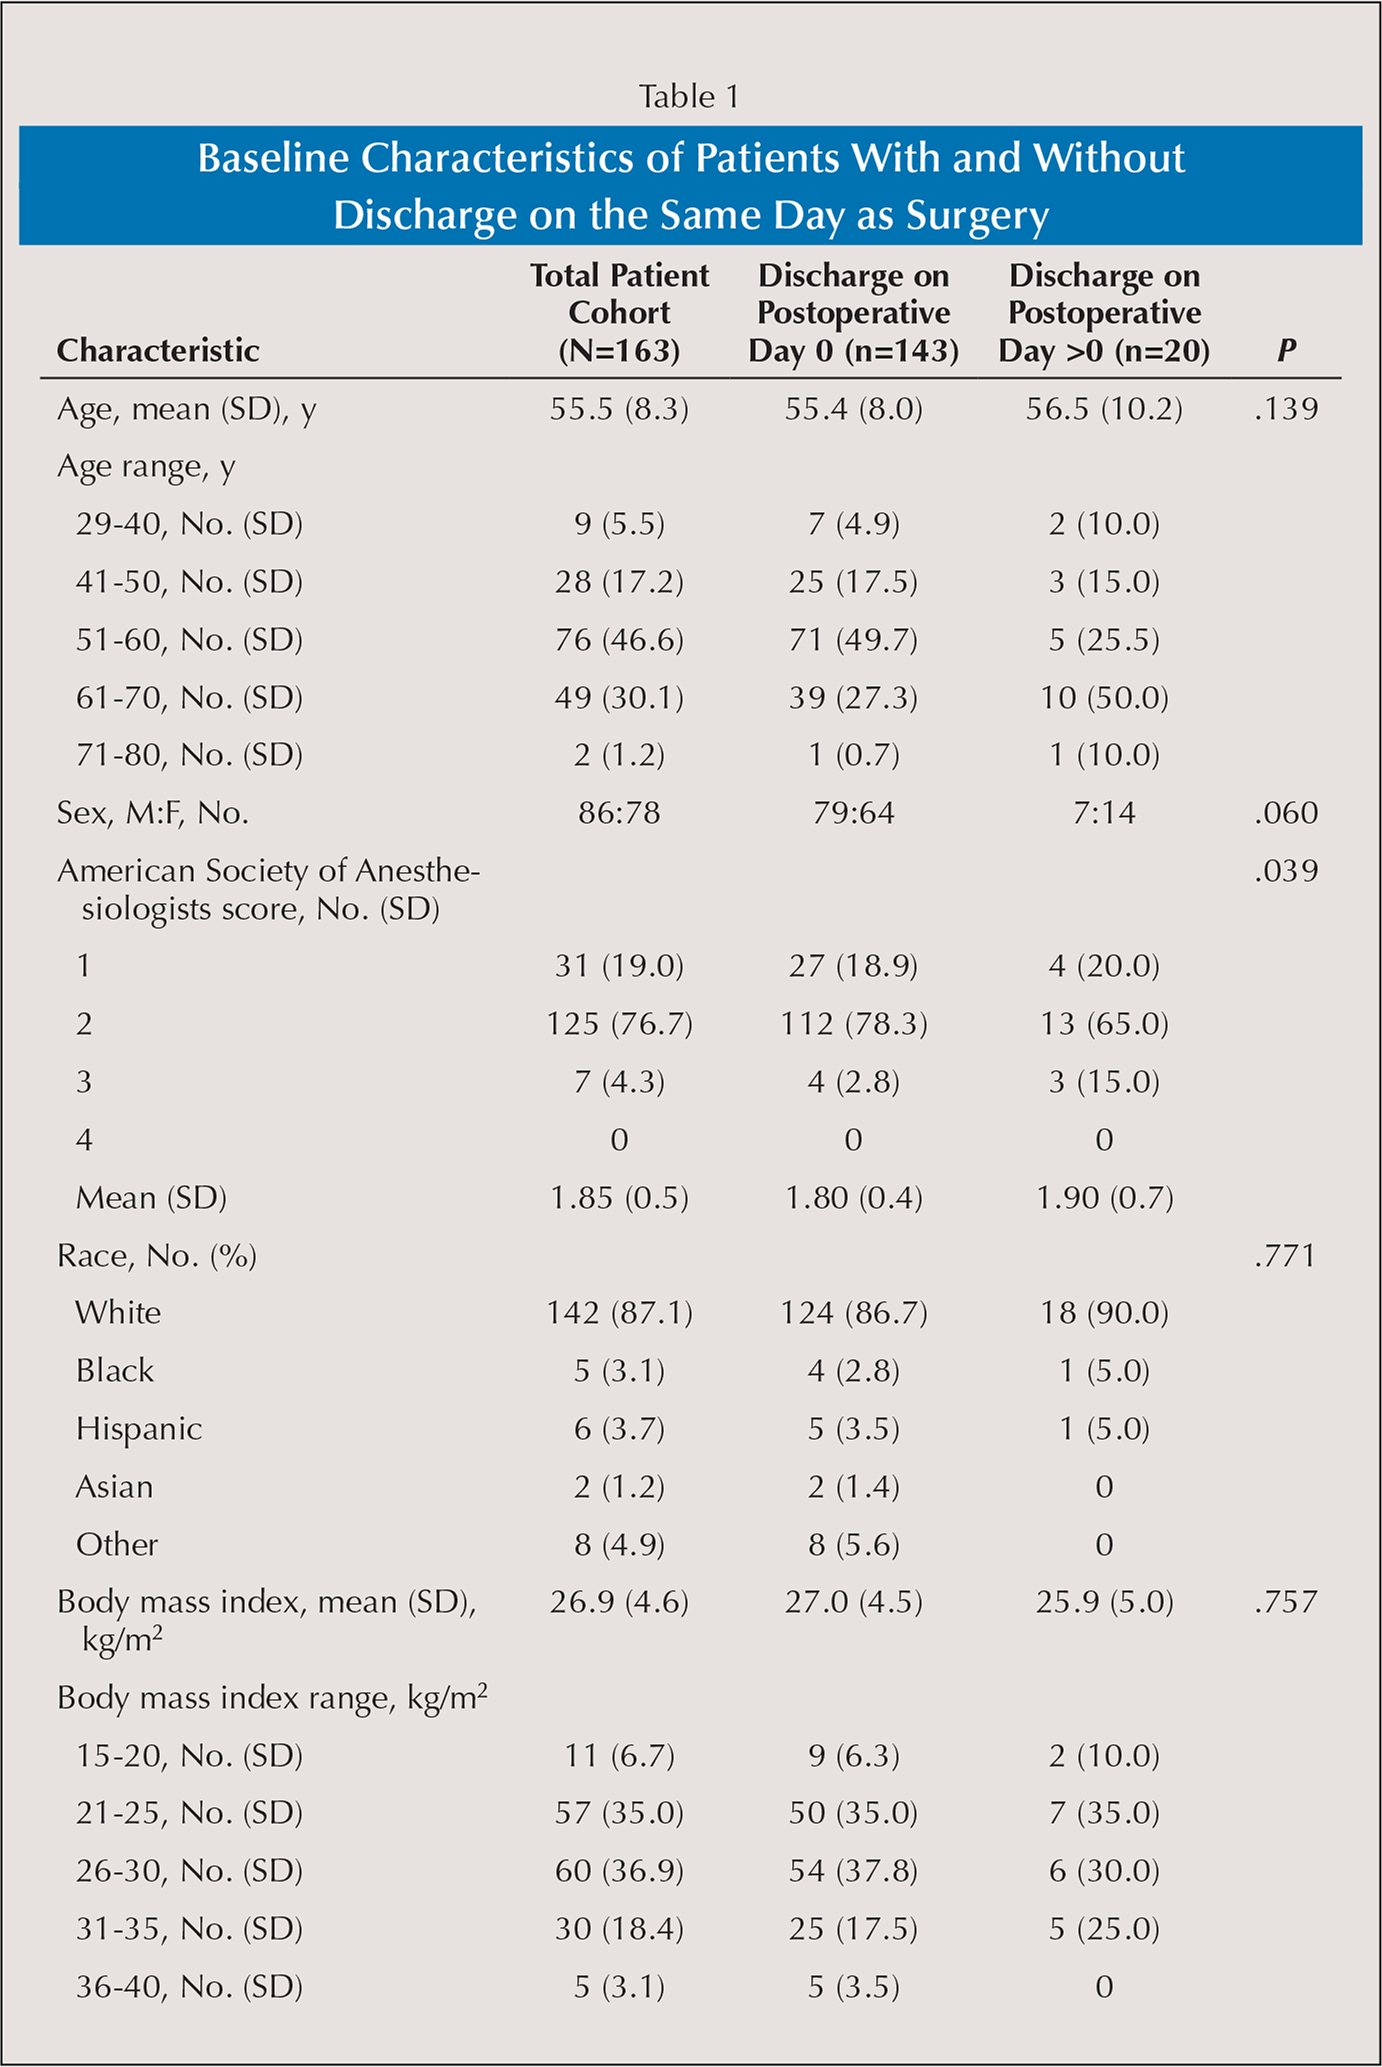 Baseline Characteristics of Patients With and Without Discharge on the Same Day as Surgery